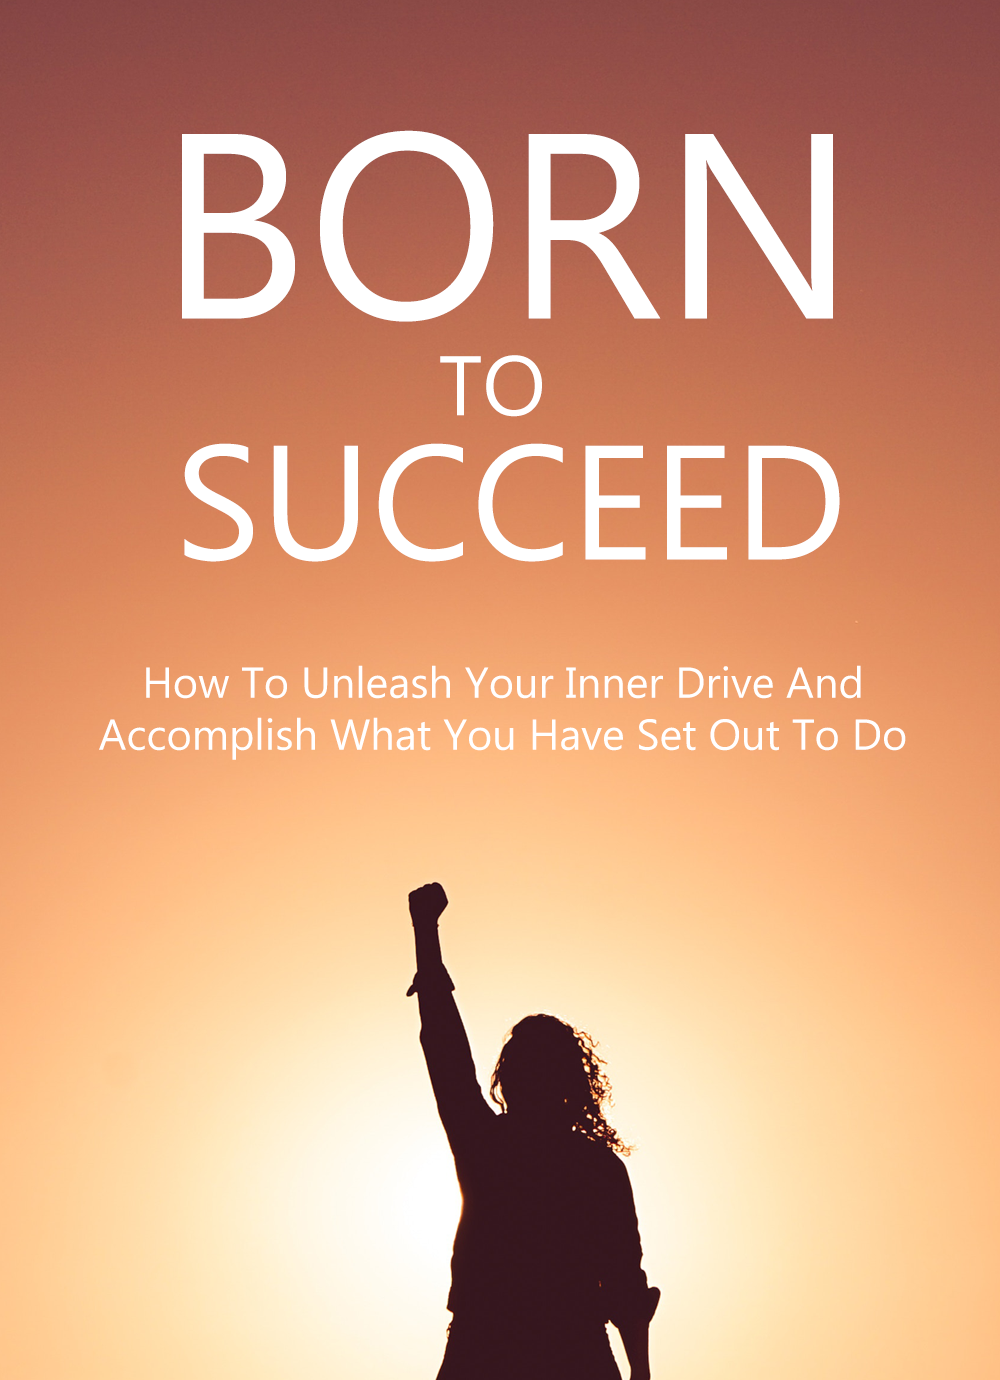 Born To Succeed (How To Unleash Your Inner Drive And Accomplish What You Have Set Out To Do) Ebook's Ebook Image